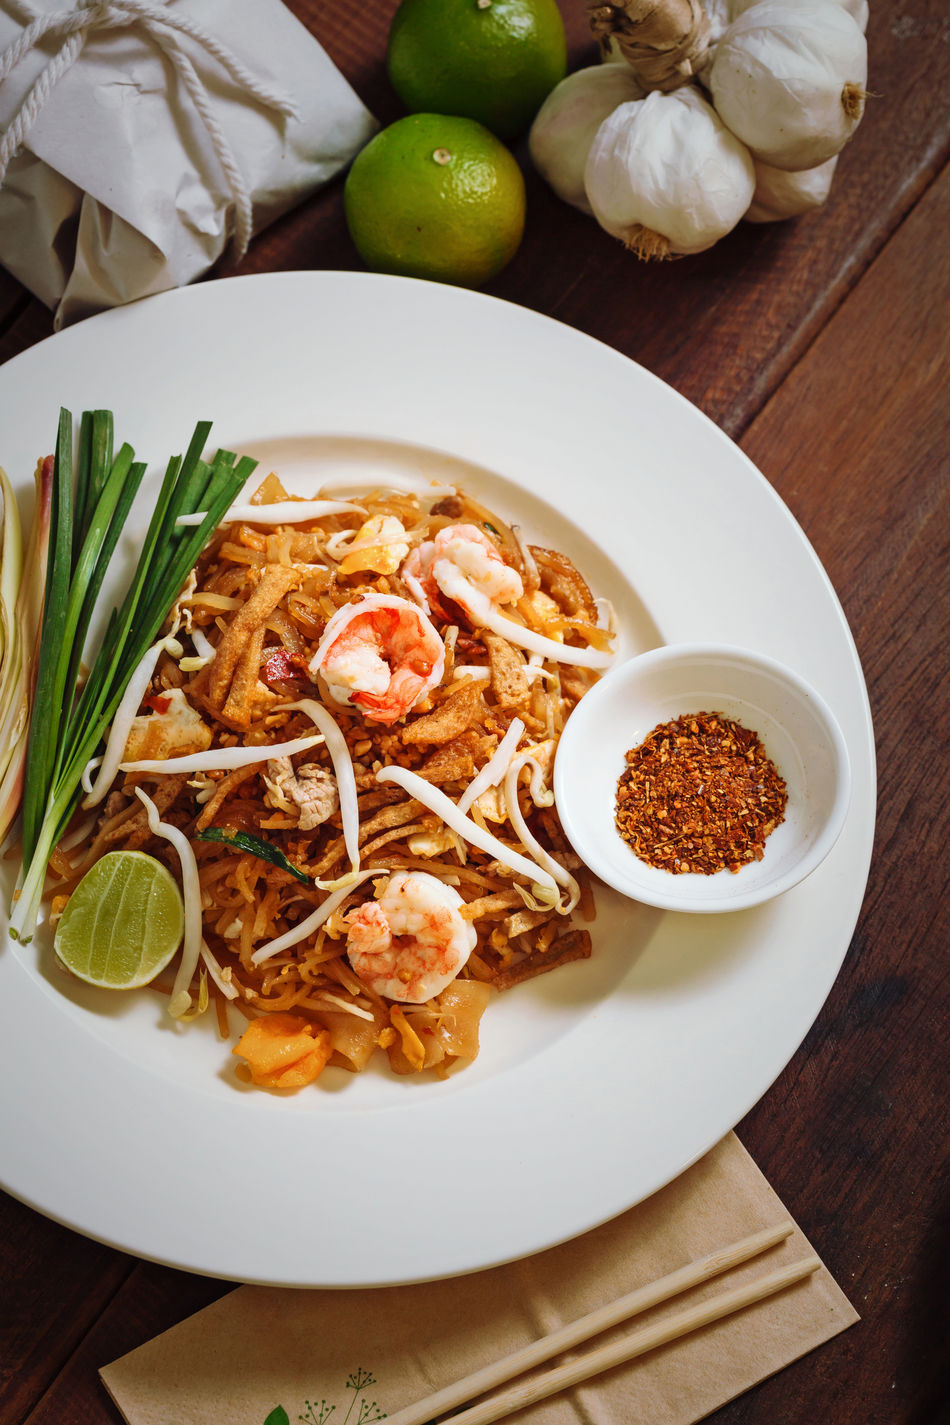 Asian Food Bowl Chili Powder Food Food And Drink Freshness Fried Fried Noodle Grilled Chicken Healthy Eating Indoors  Meal No People Noodle Pad Thai Pad Thai Kung Pad Thai With Shrimp Plate Ready-to-eat Rice Noodle  Serving Size Shrimp Spicy Thai Food ผัดไทย